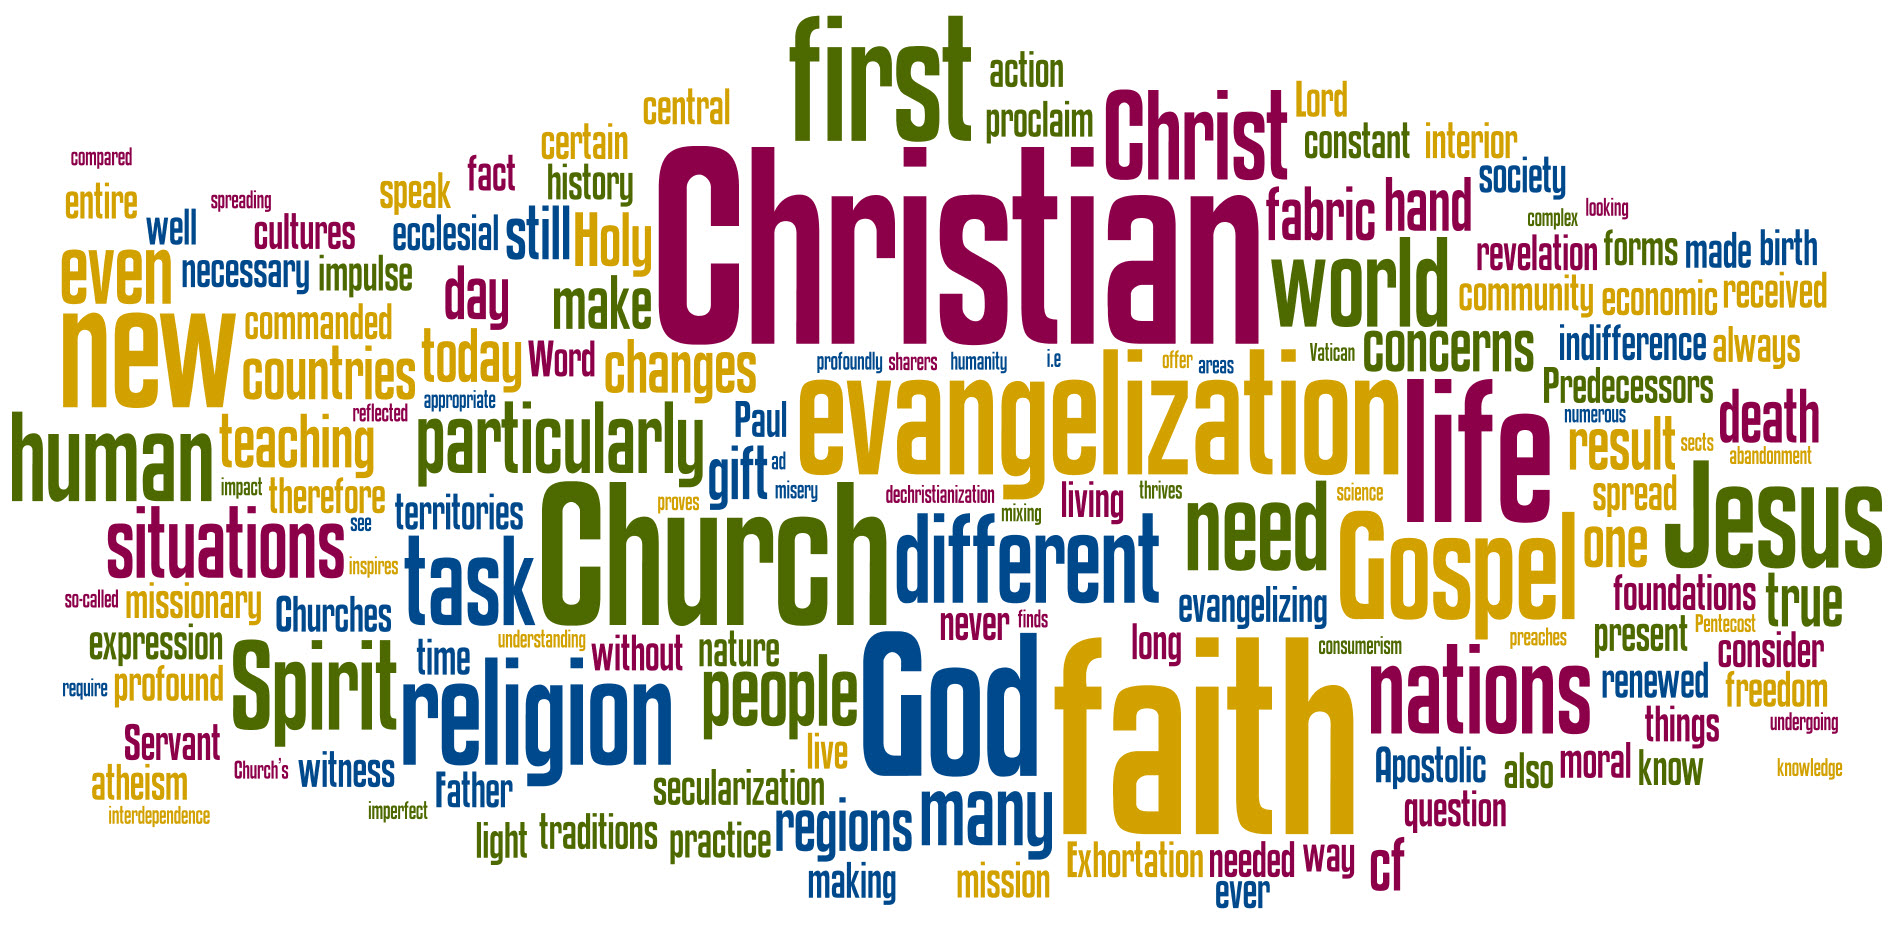 Text from the Apostolic Letter for the New Evangelization displayed as a word cloud.